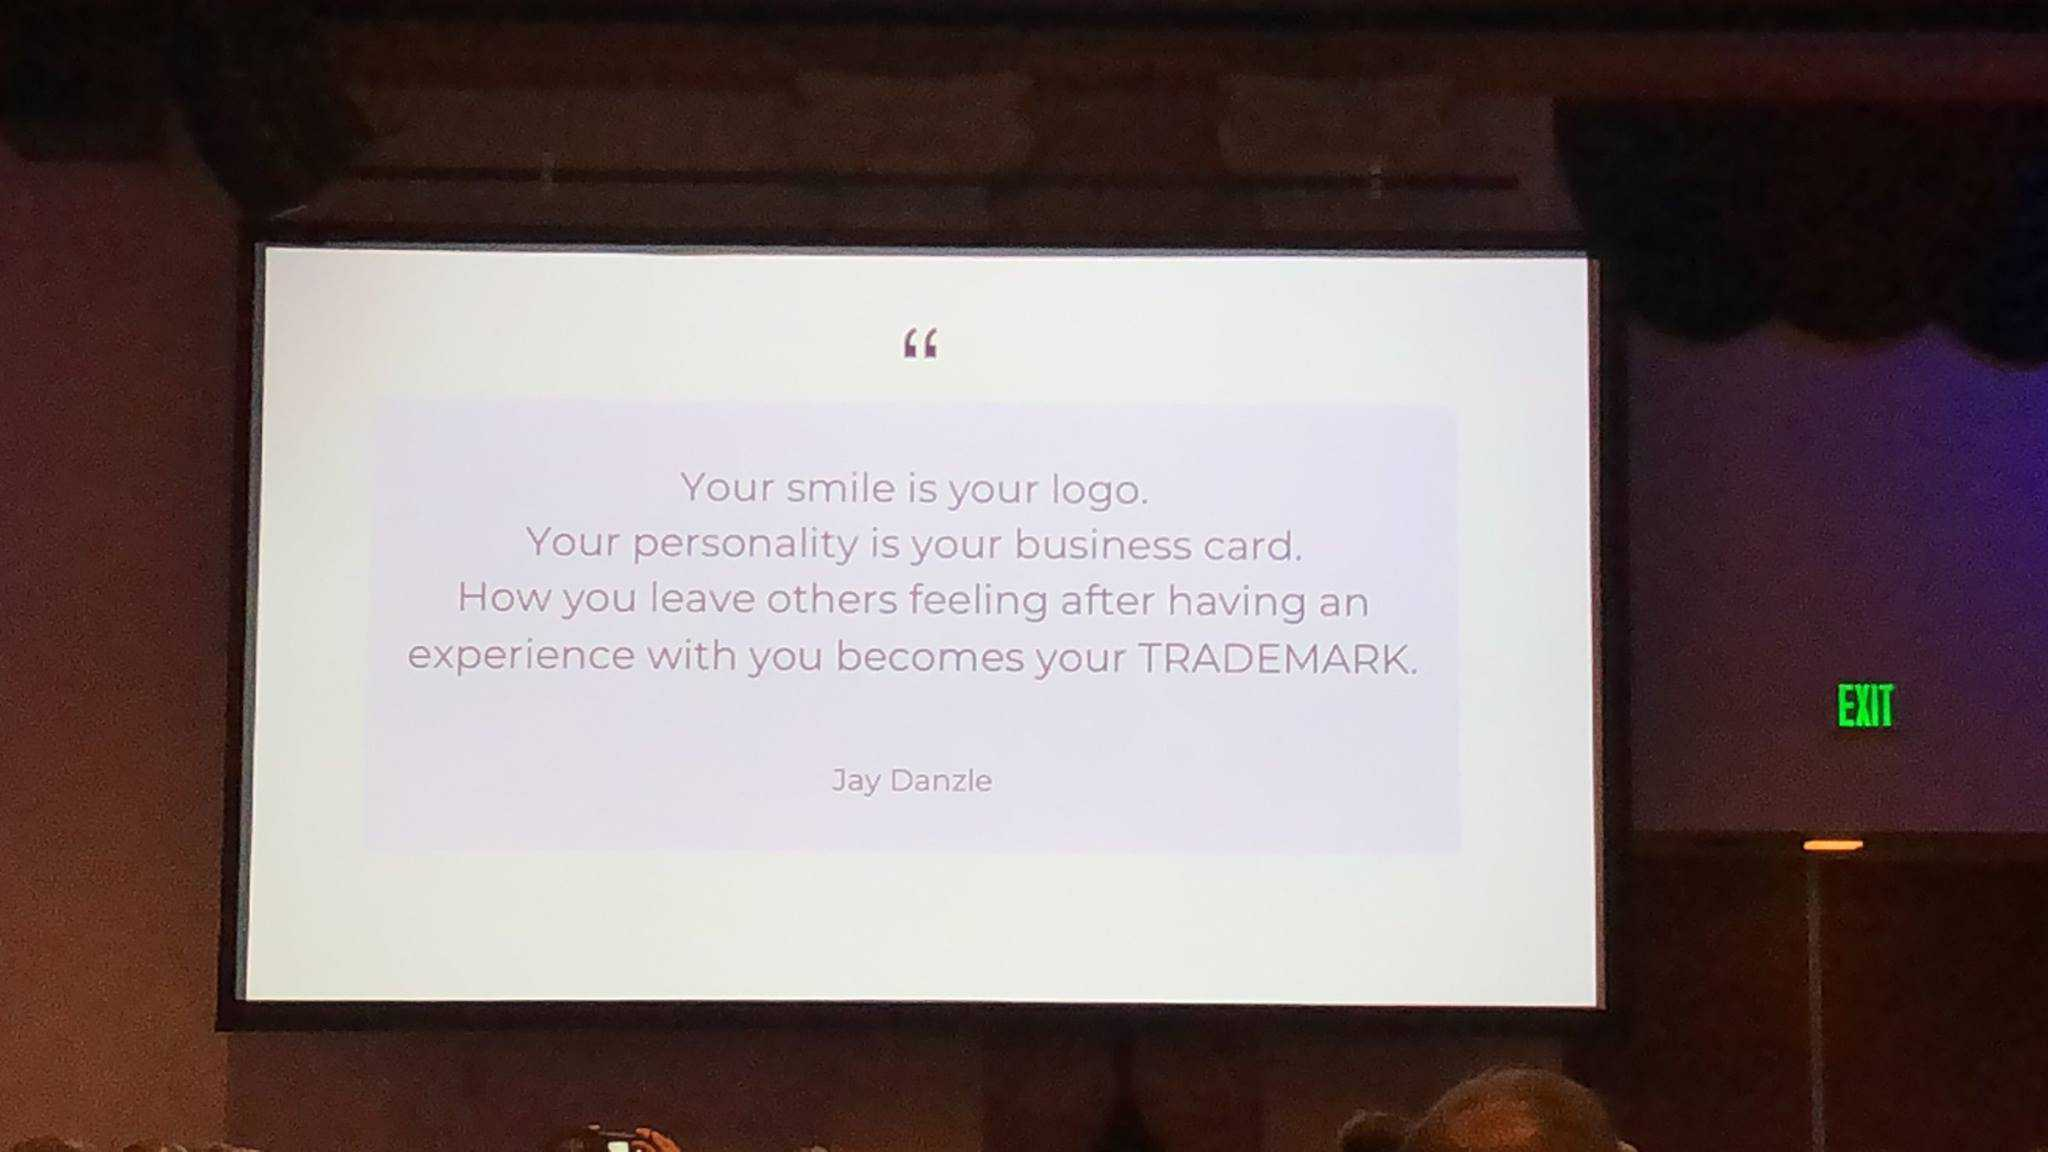 Love this quote by Jay Danzie — your smile is your logo! Your brand starts and ends with YOU.